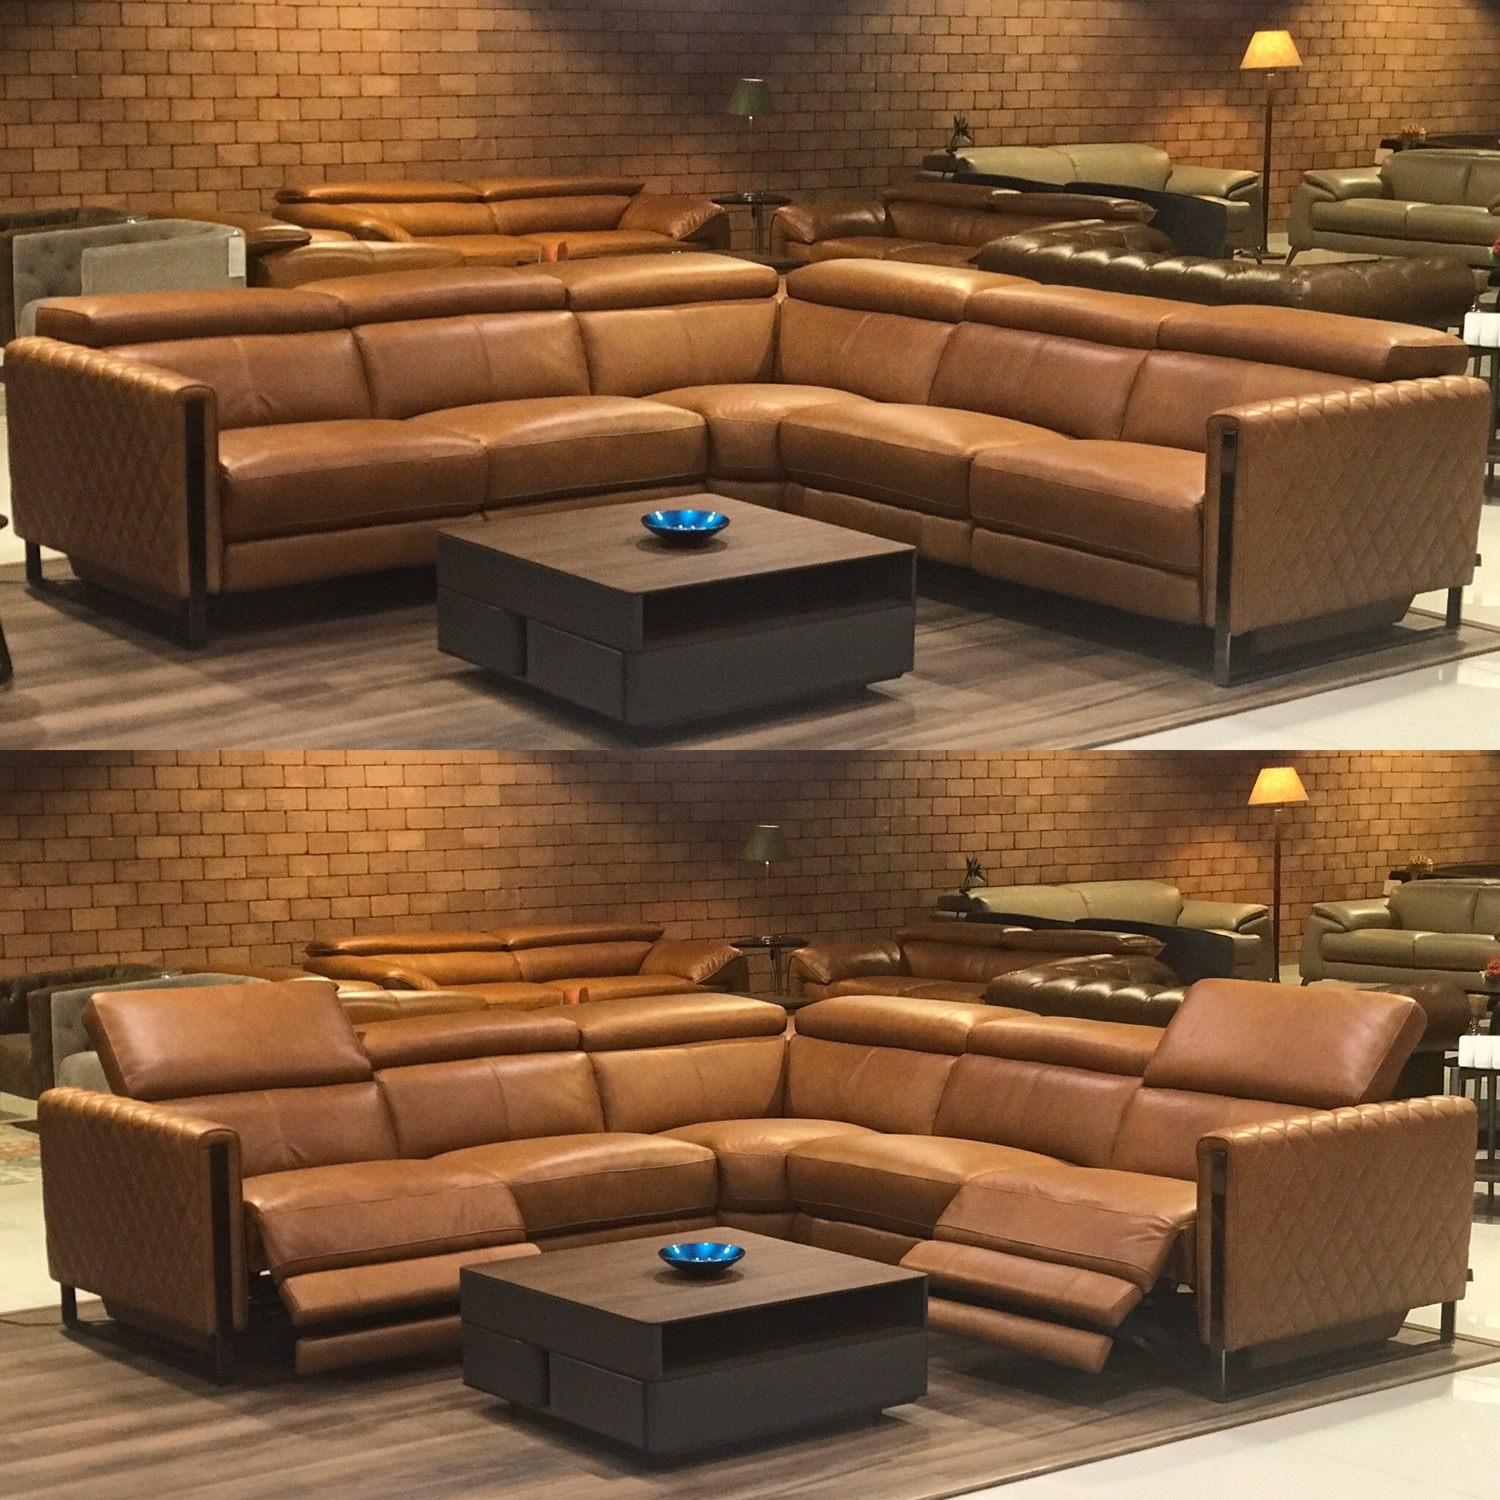 Jaguar - Top Line Premium Sofa